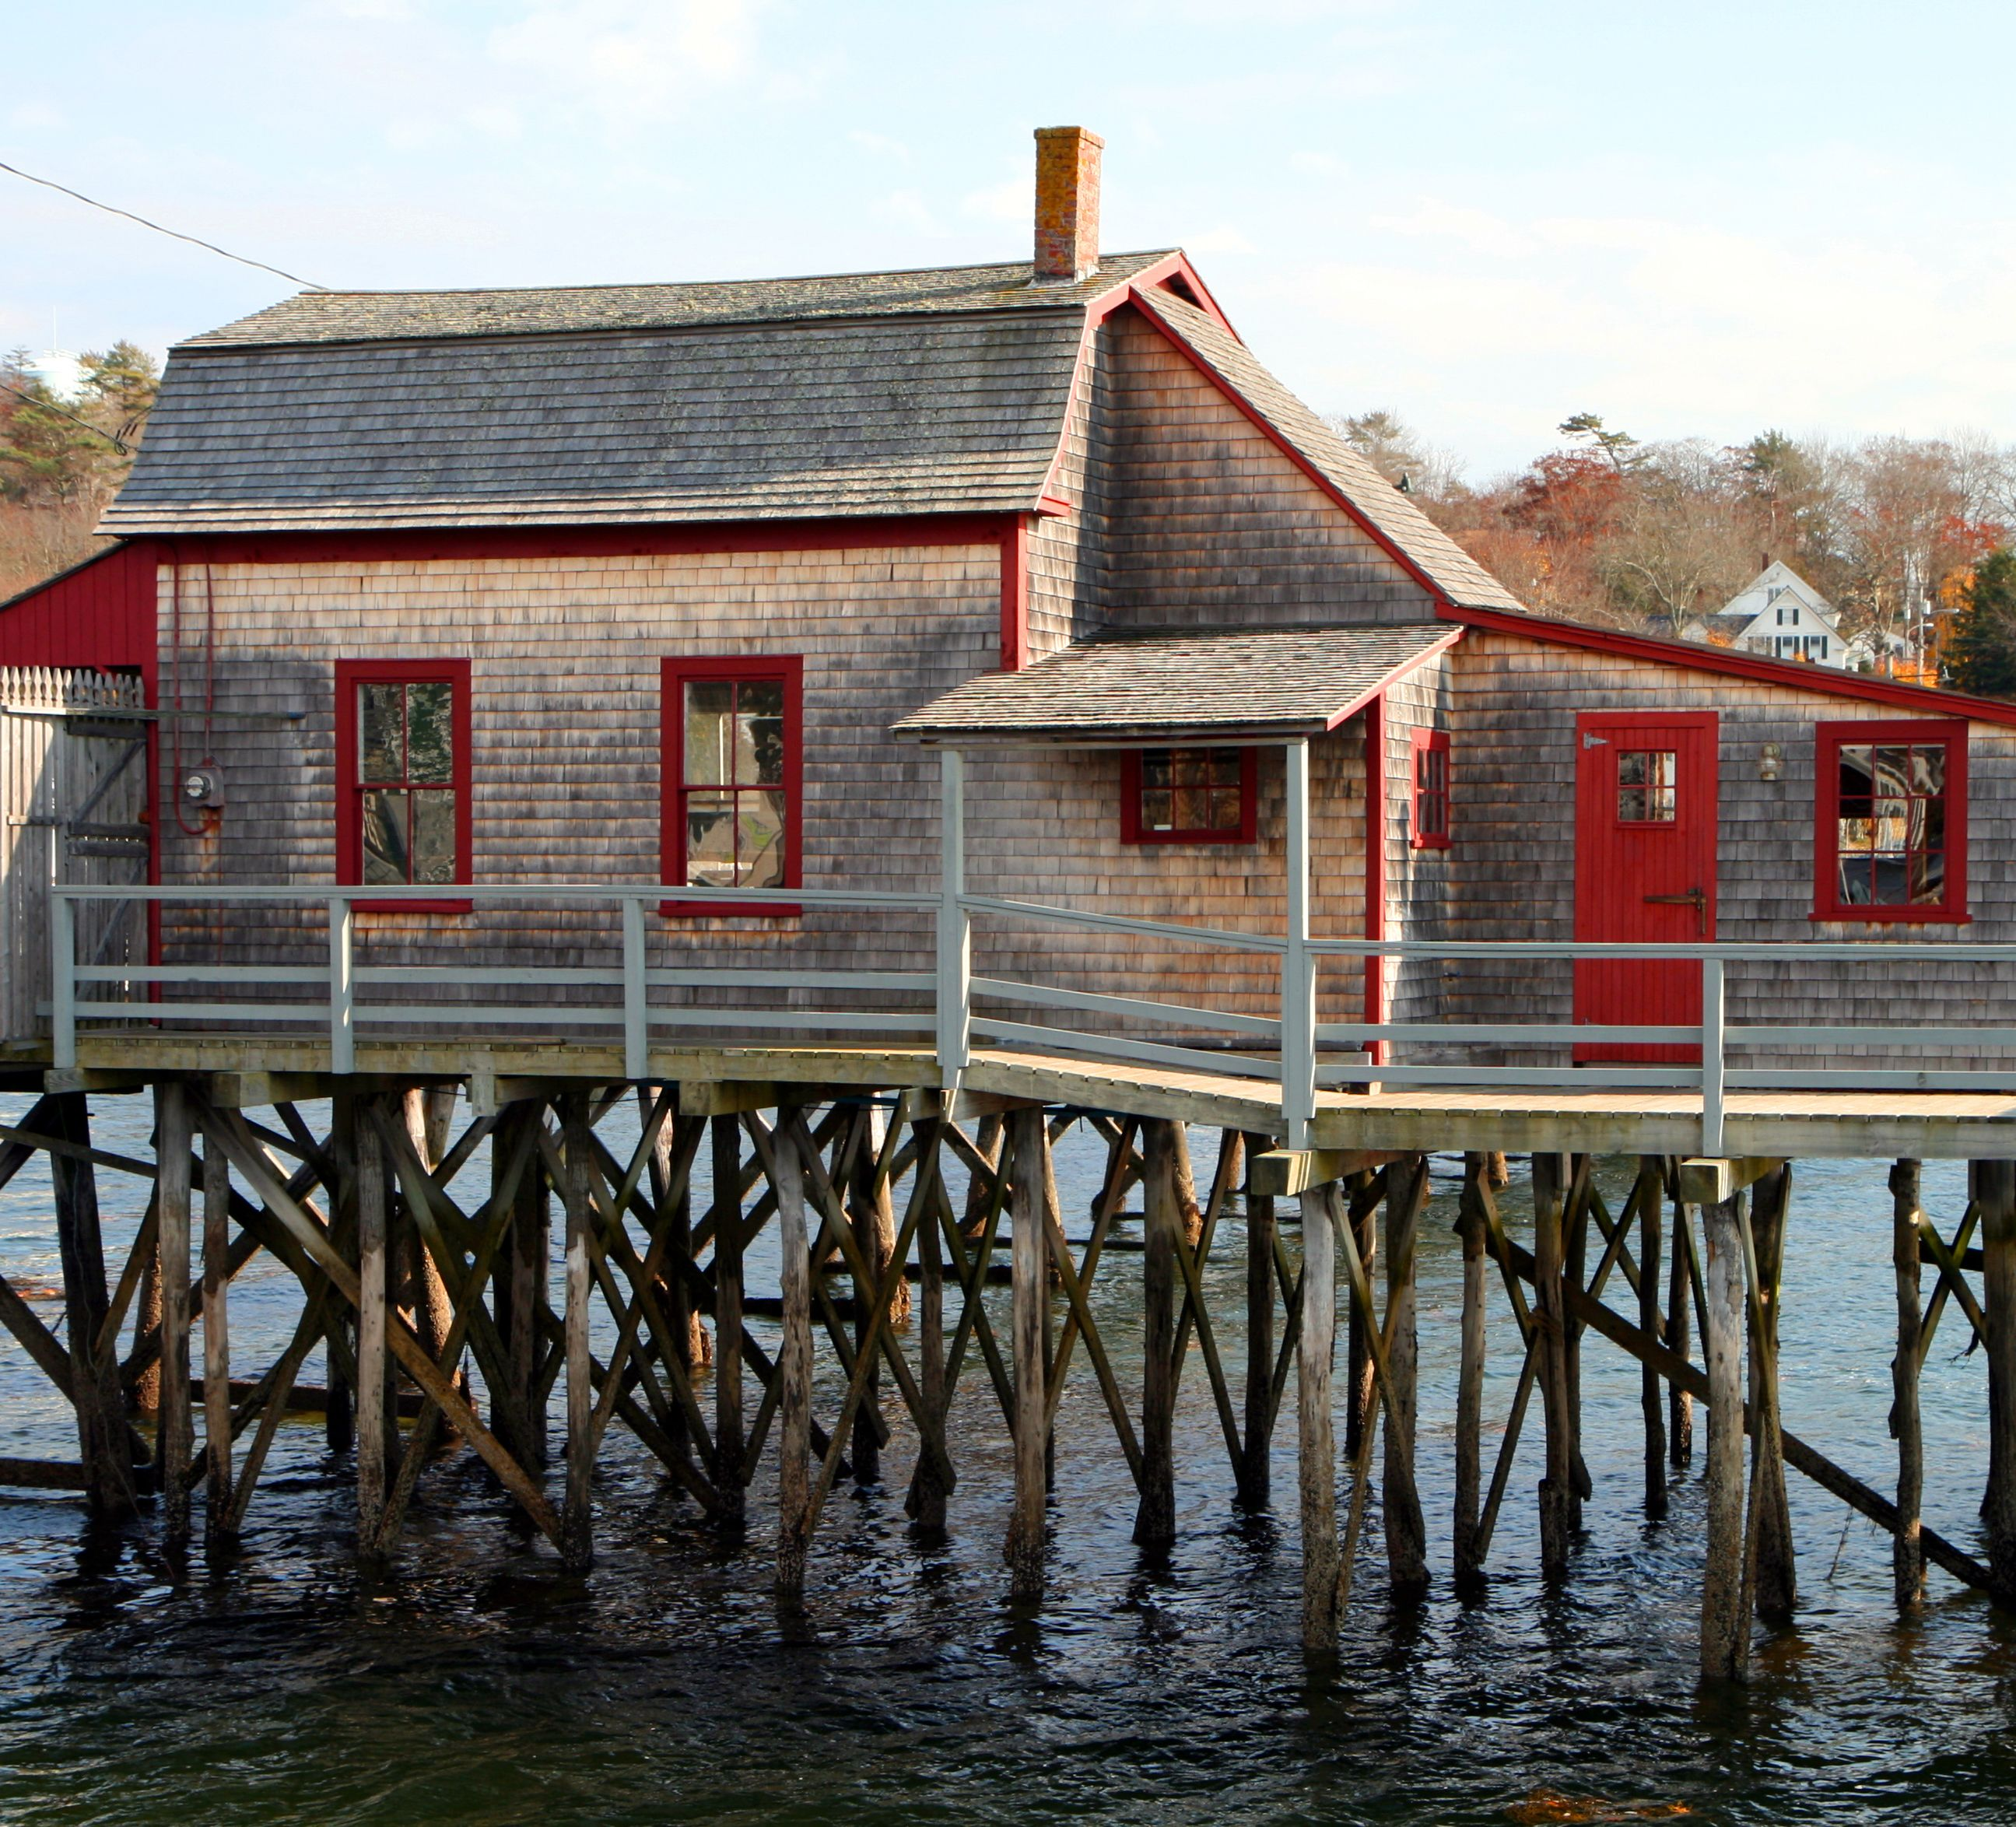 Hii is minutes from downtown boothbay harbor and the